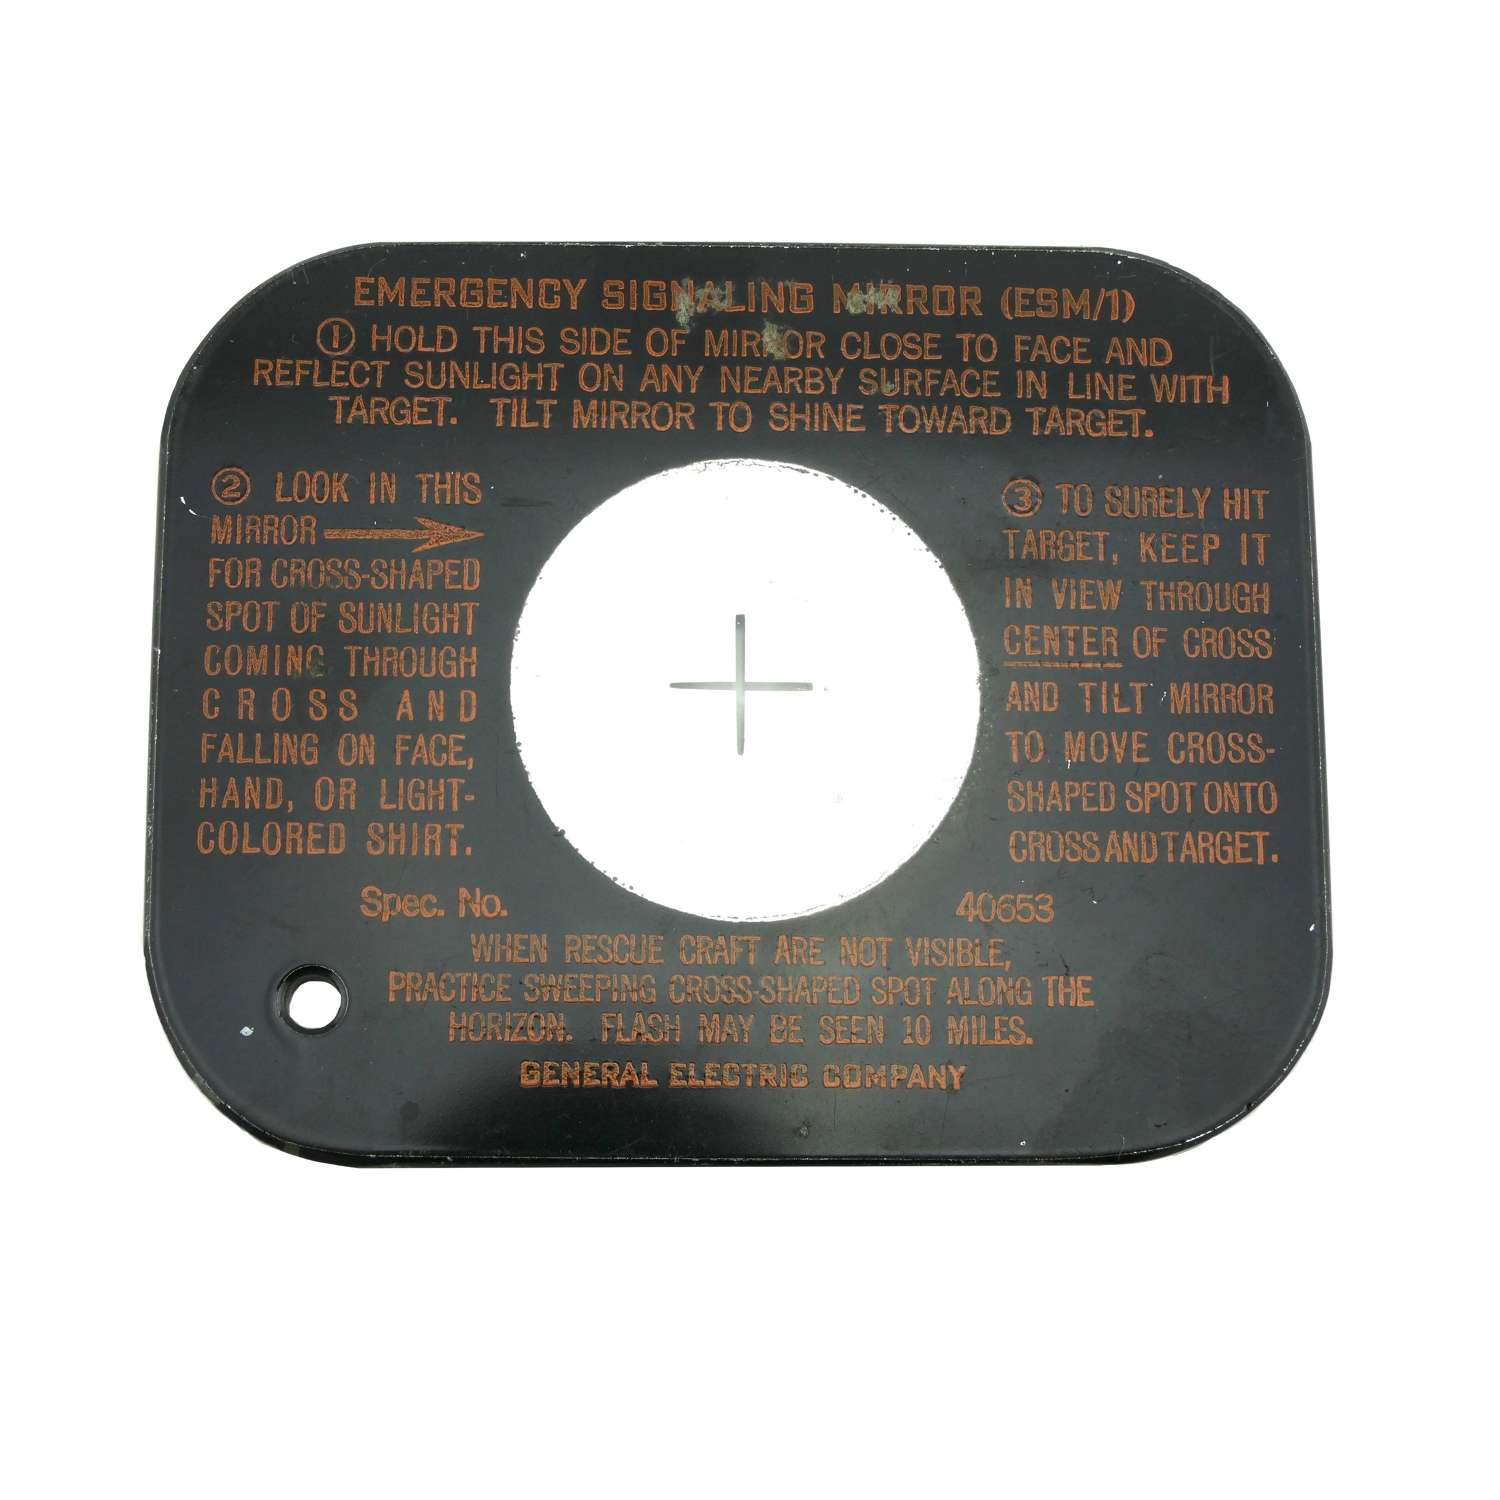 USAAF ESM/1 emergency signal mirror